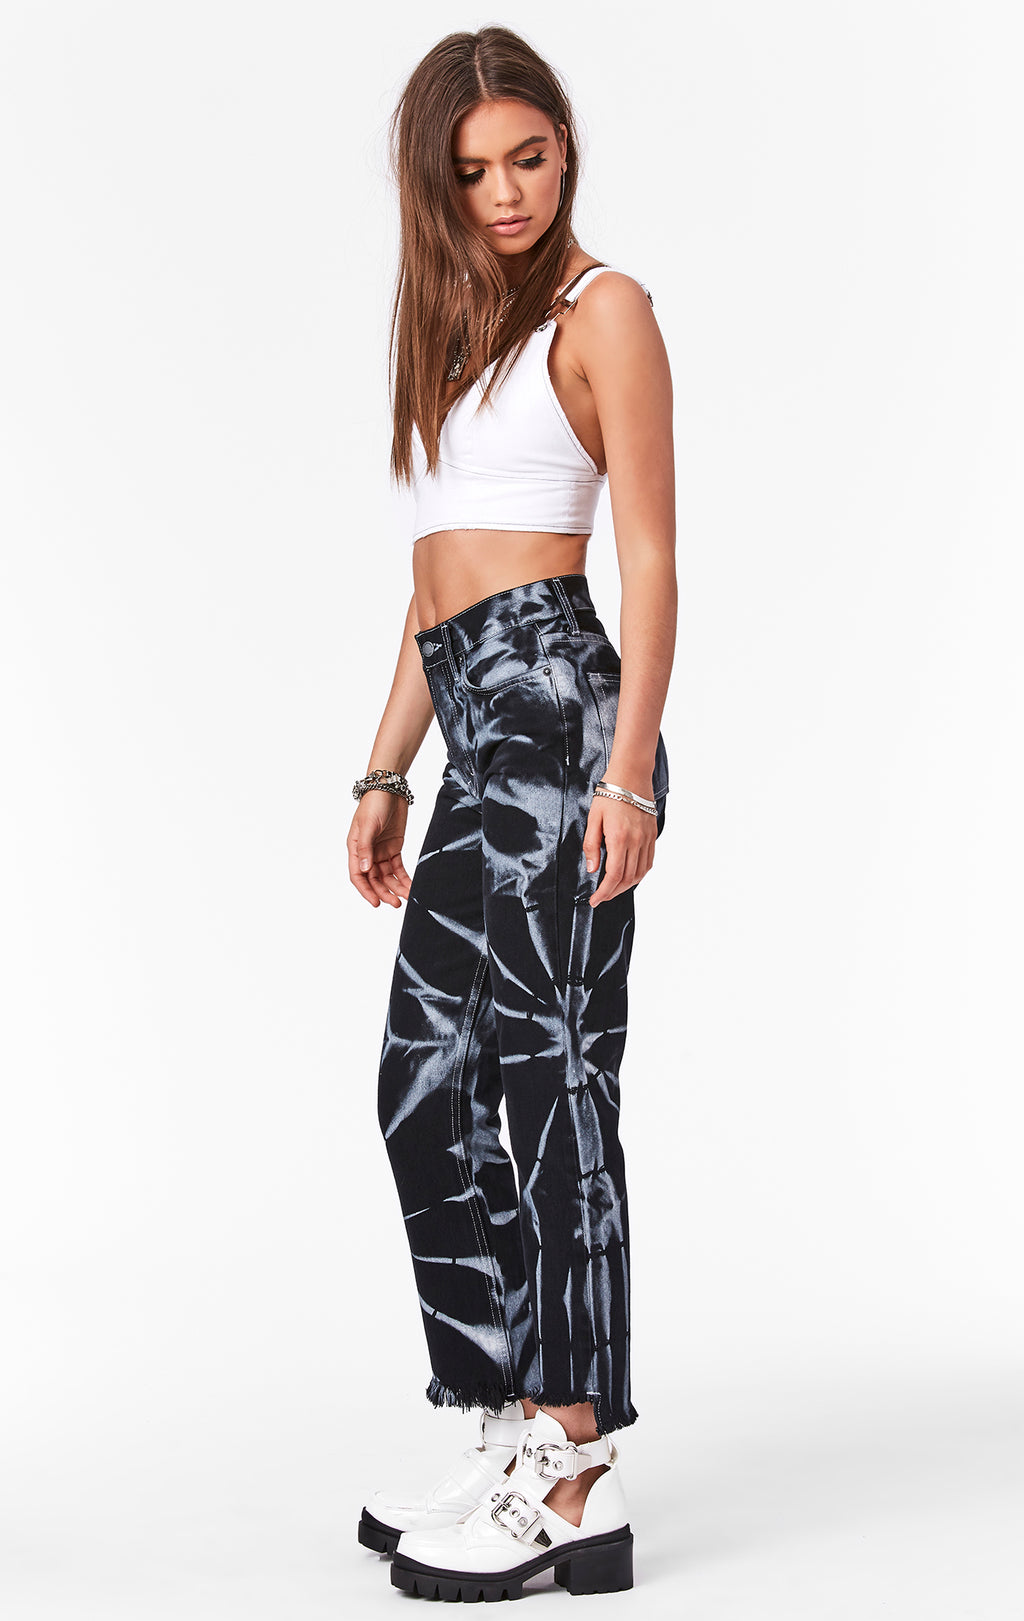 CARMAR DENIM TIE DYE EMELIA JEAN SIDE